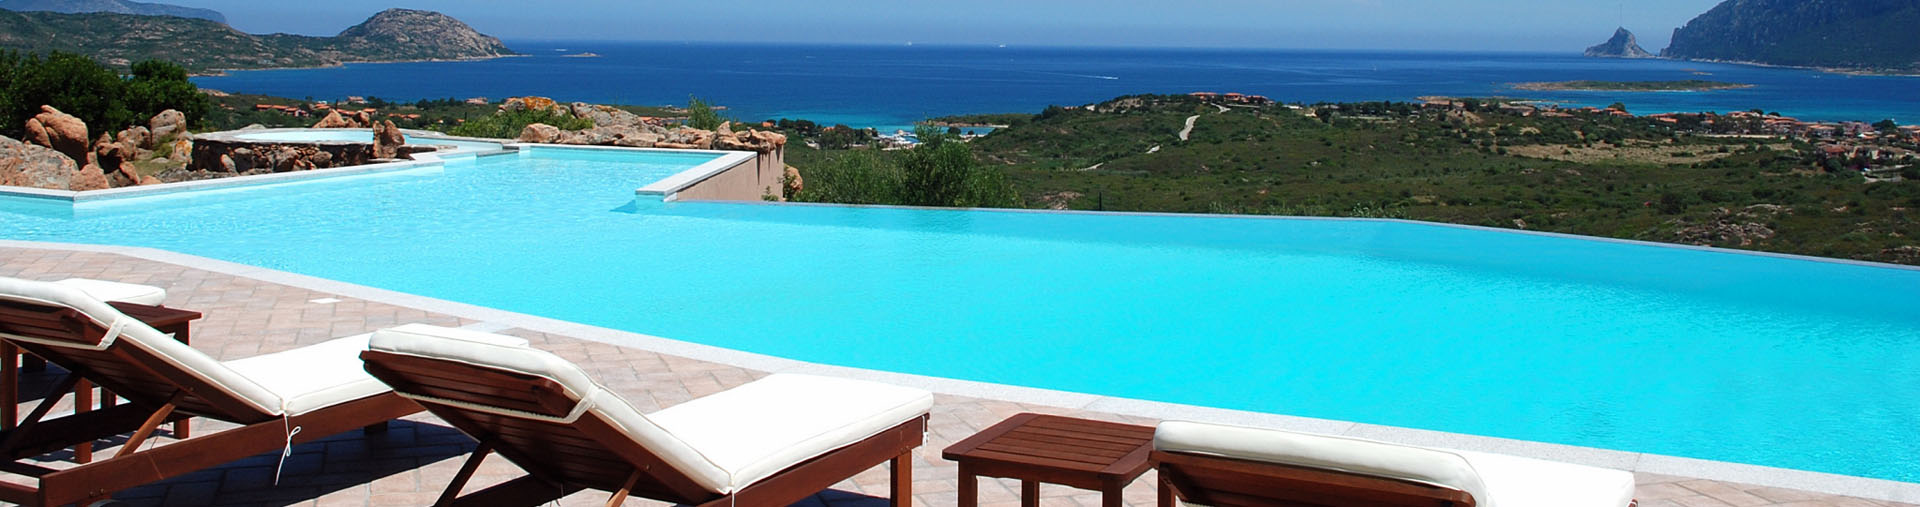 Villa Contros, Sardinia|The ideal setting for your holiday on the Costa Smeralda